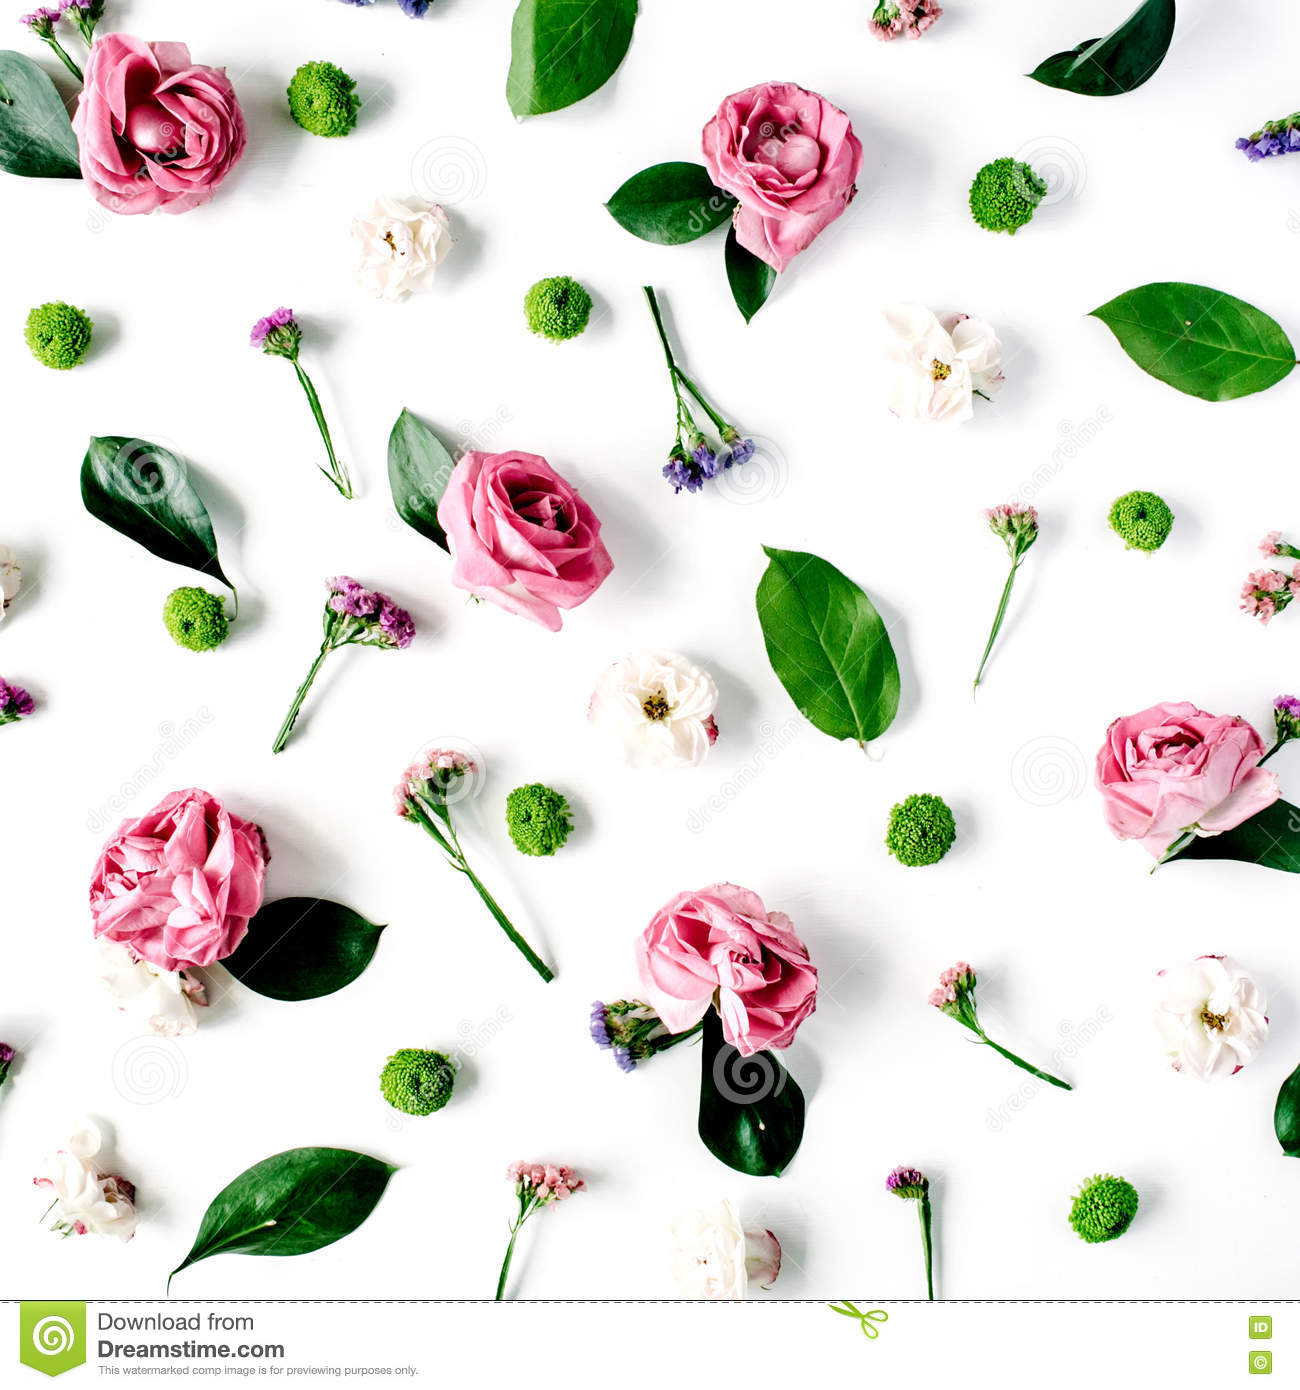 Wallpaper Texture Pink Roses And White Flowers On White Background